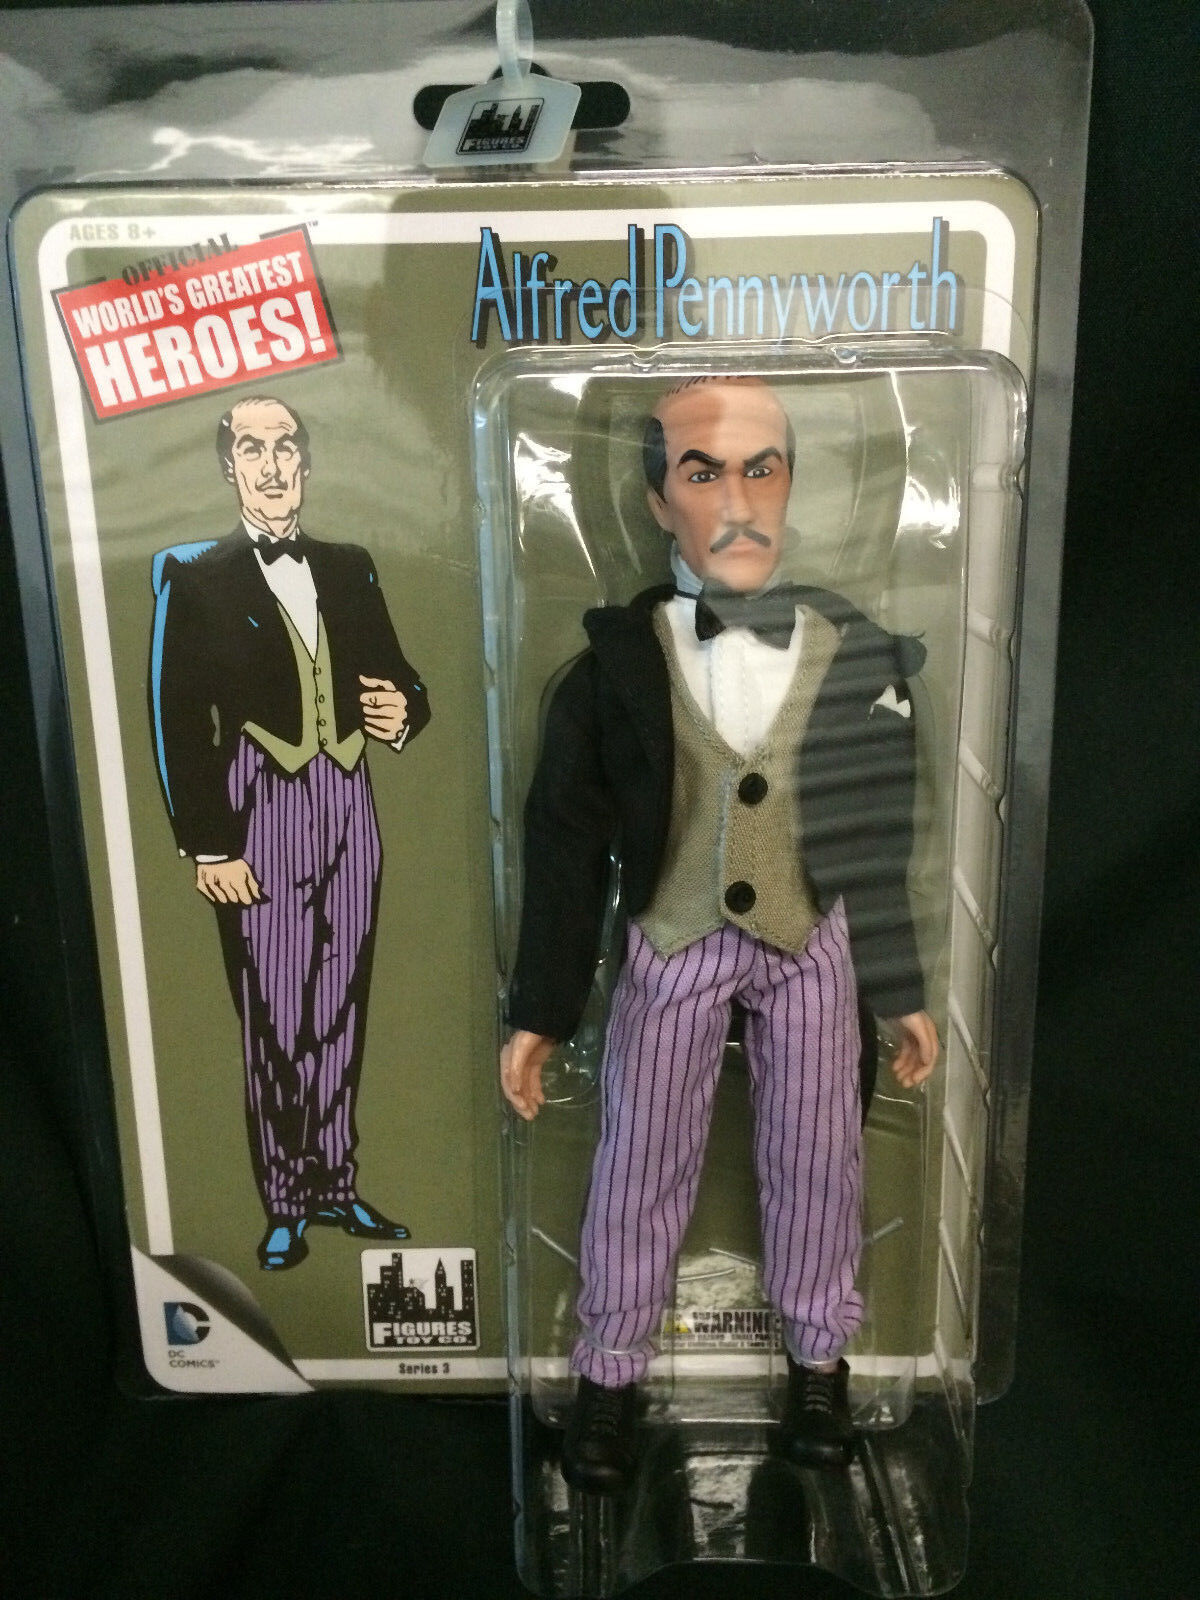 World's Greatest Heroes Retro Batman Batman Batman ALFROT PENNYWORTH MEGO Figures Toy Company e2ff18